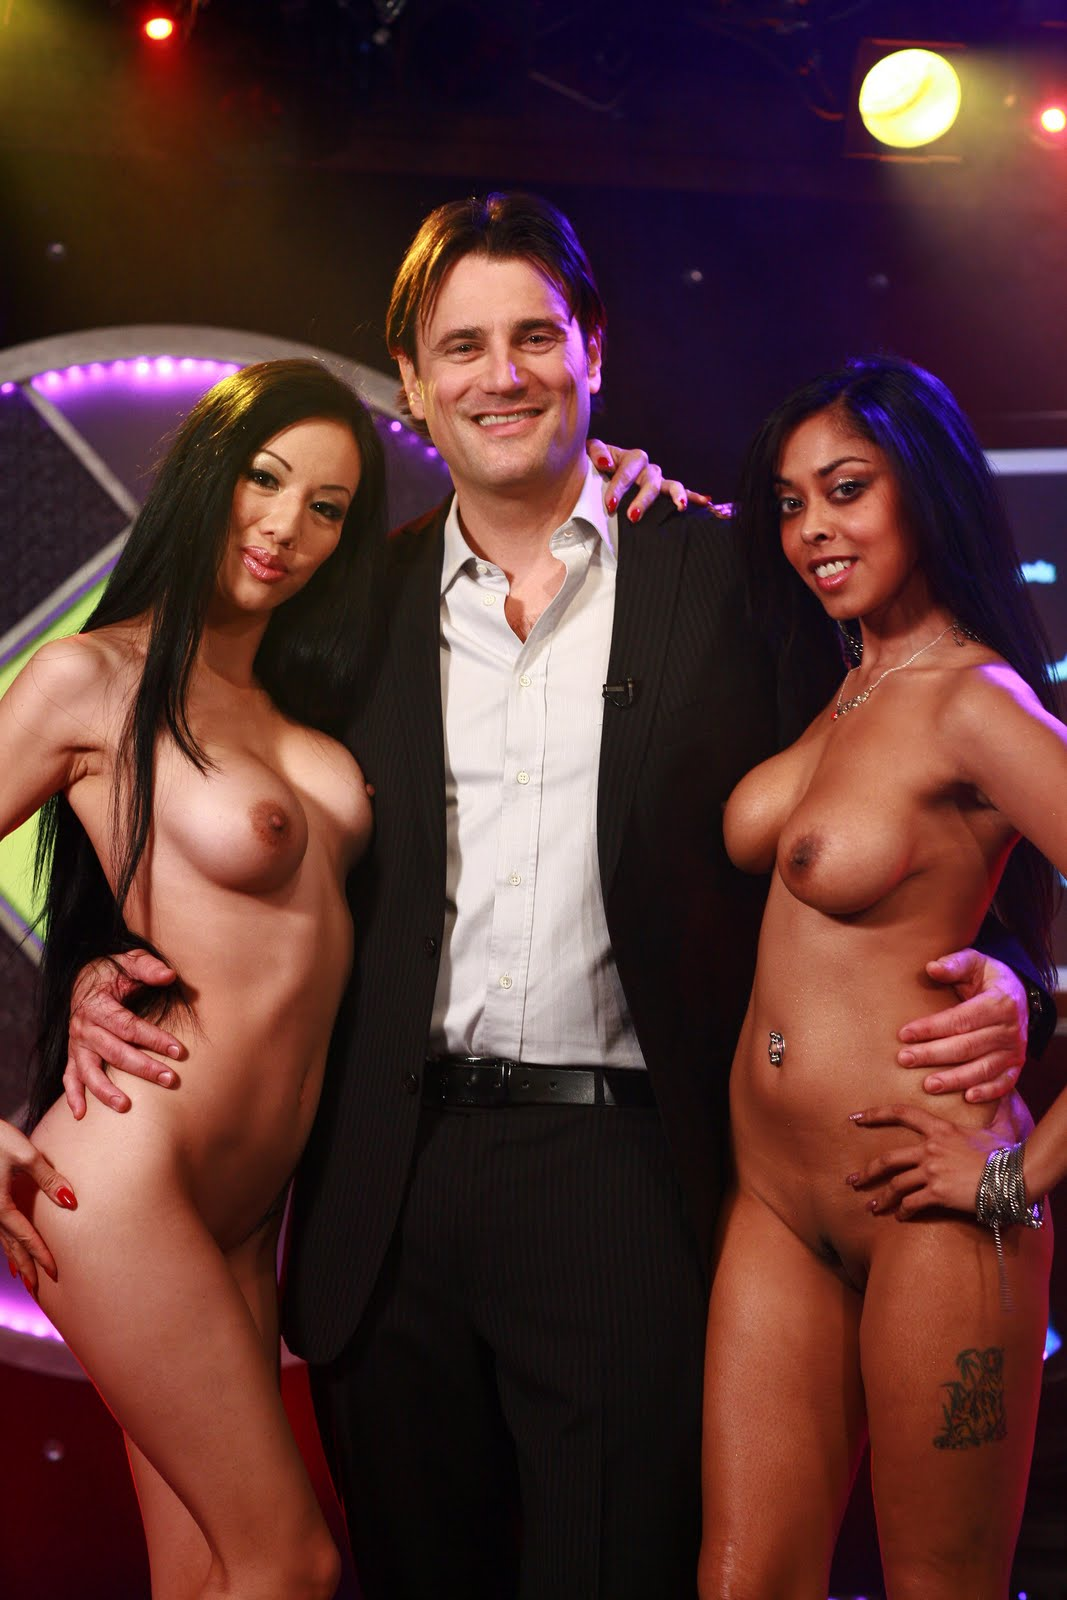 Nude girls on howard stern show